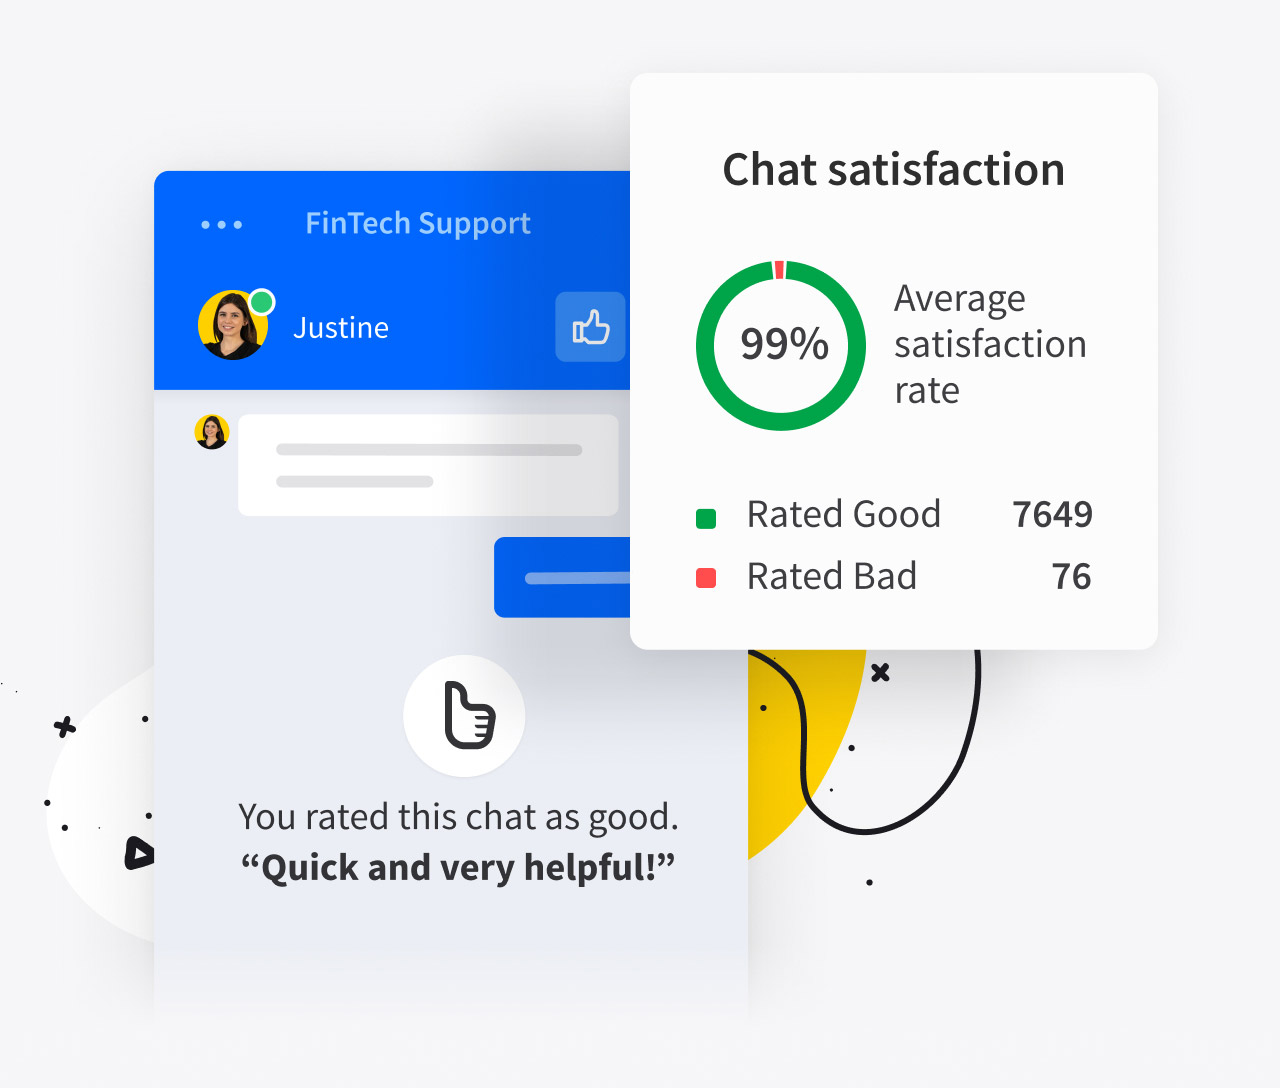 Feedback from live chat